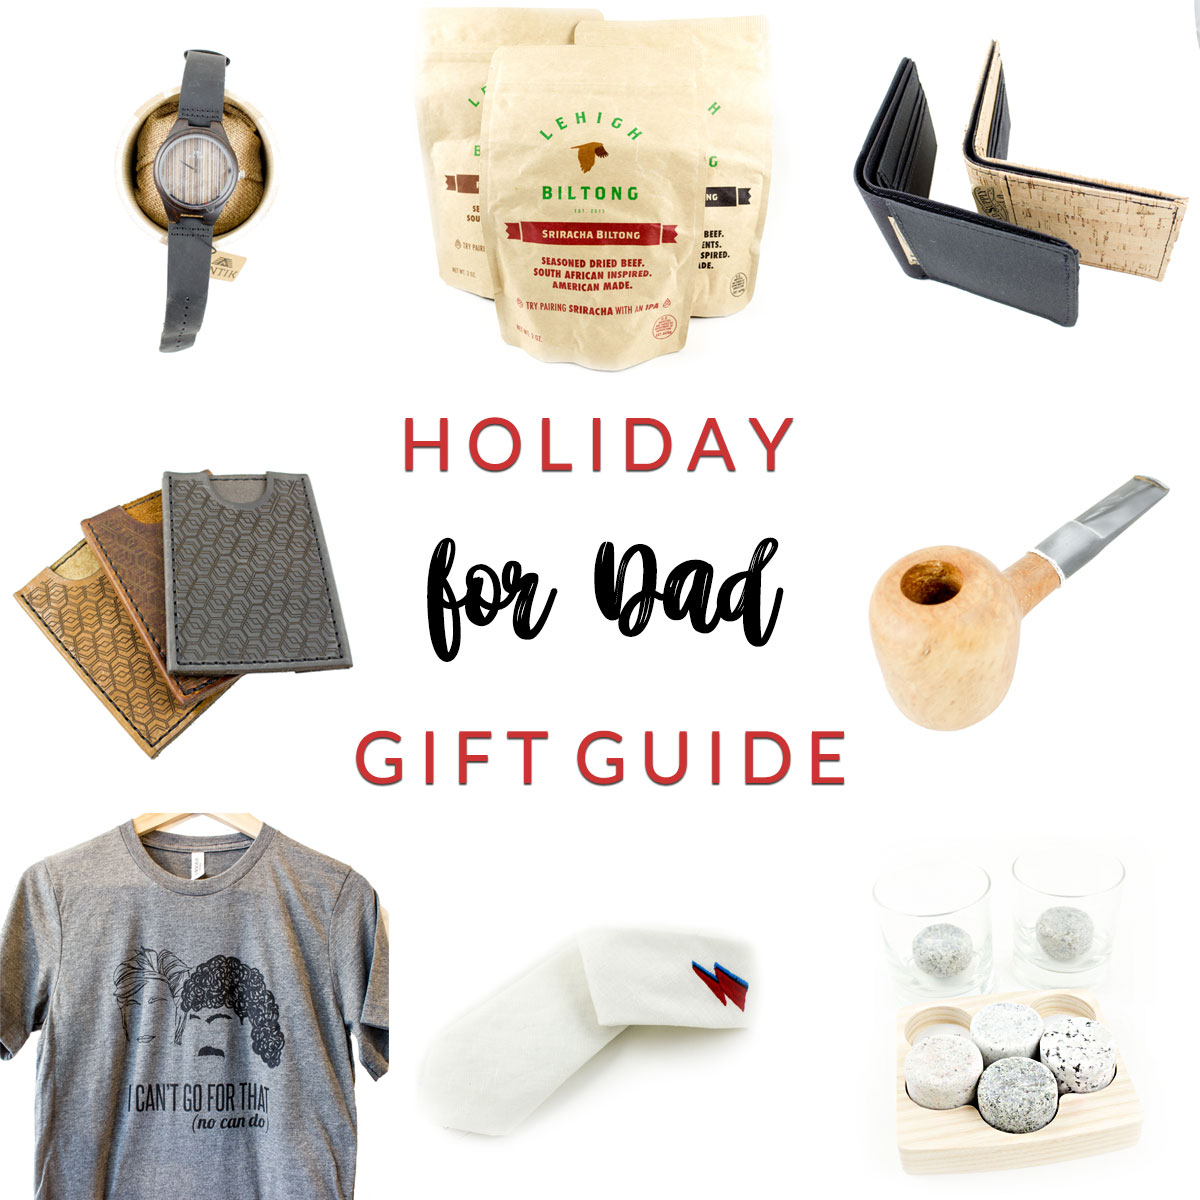 For Dady Holiday Gift Guide at Homespun Indianapolis